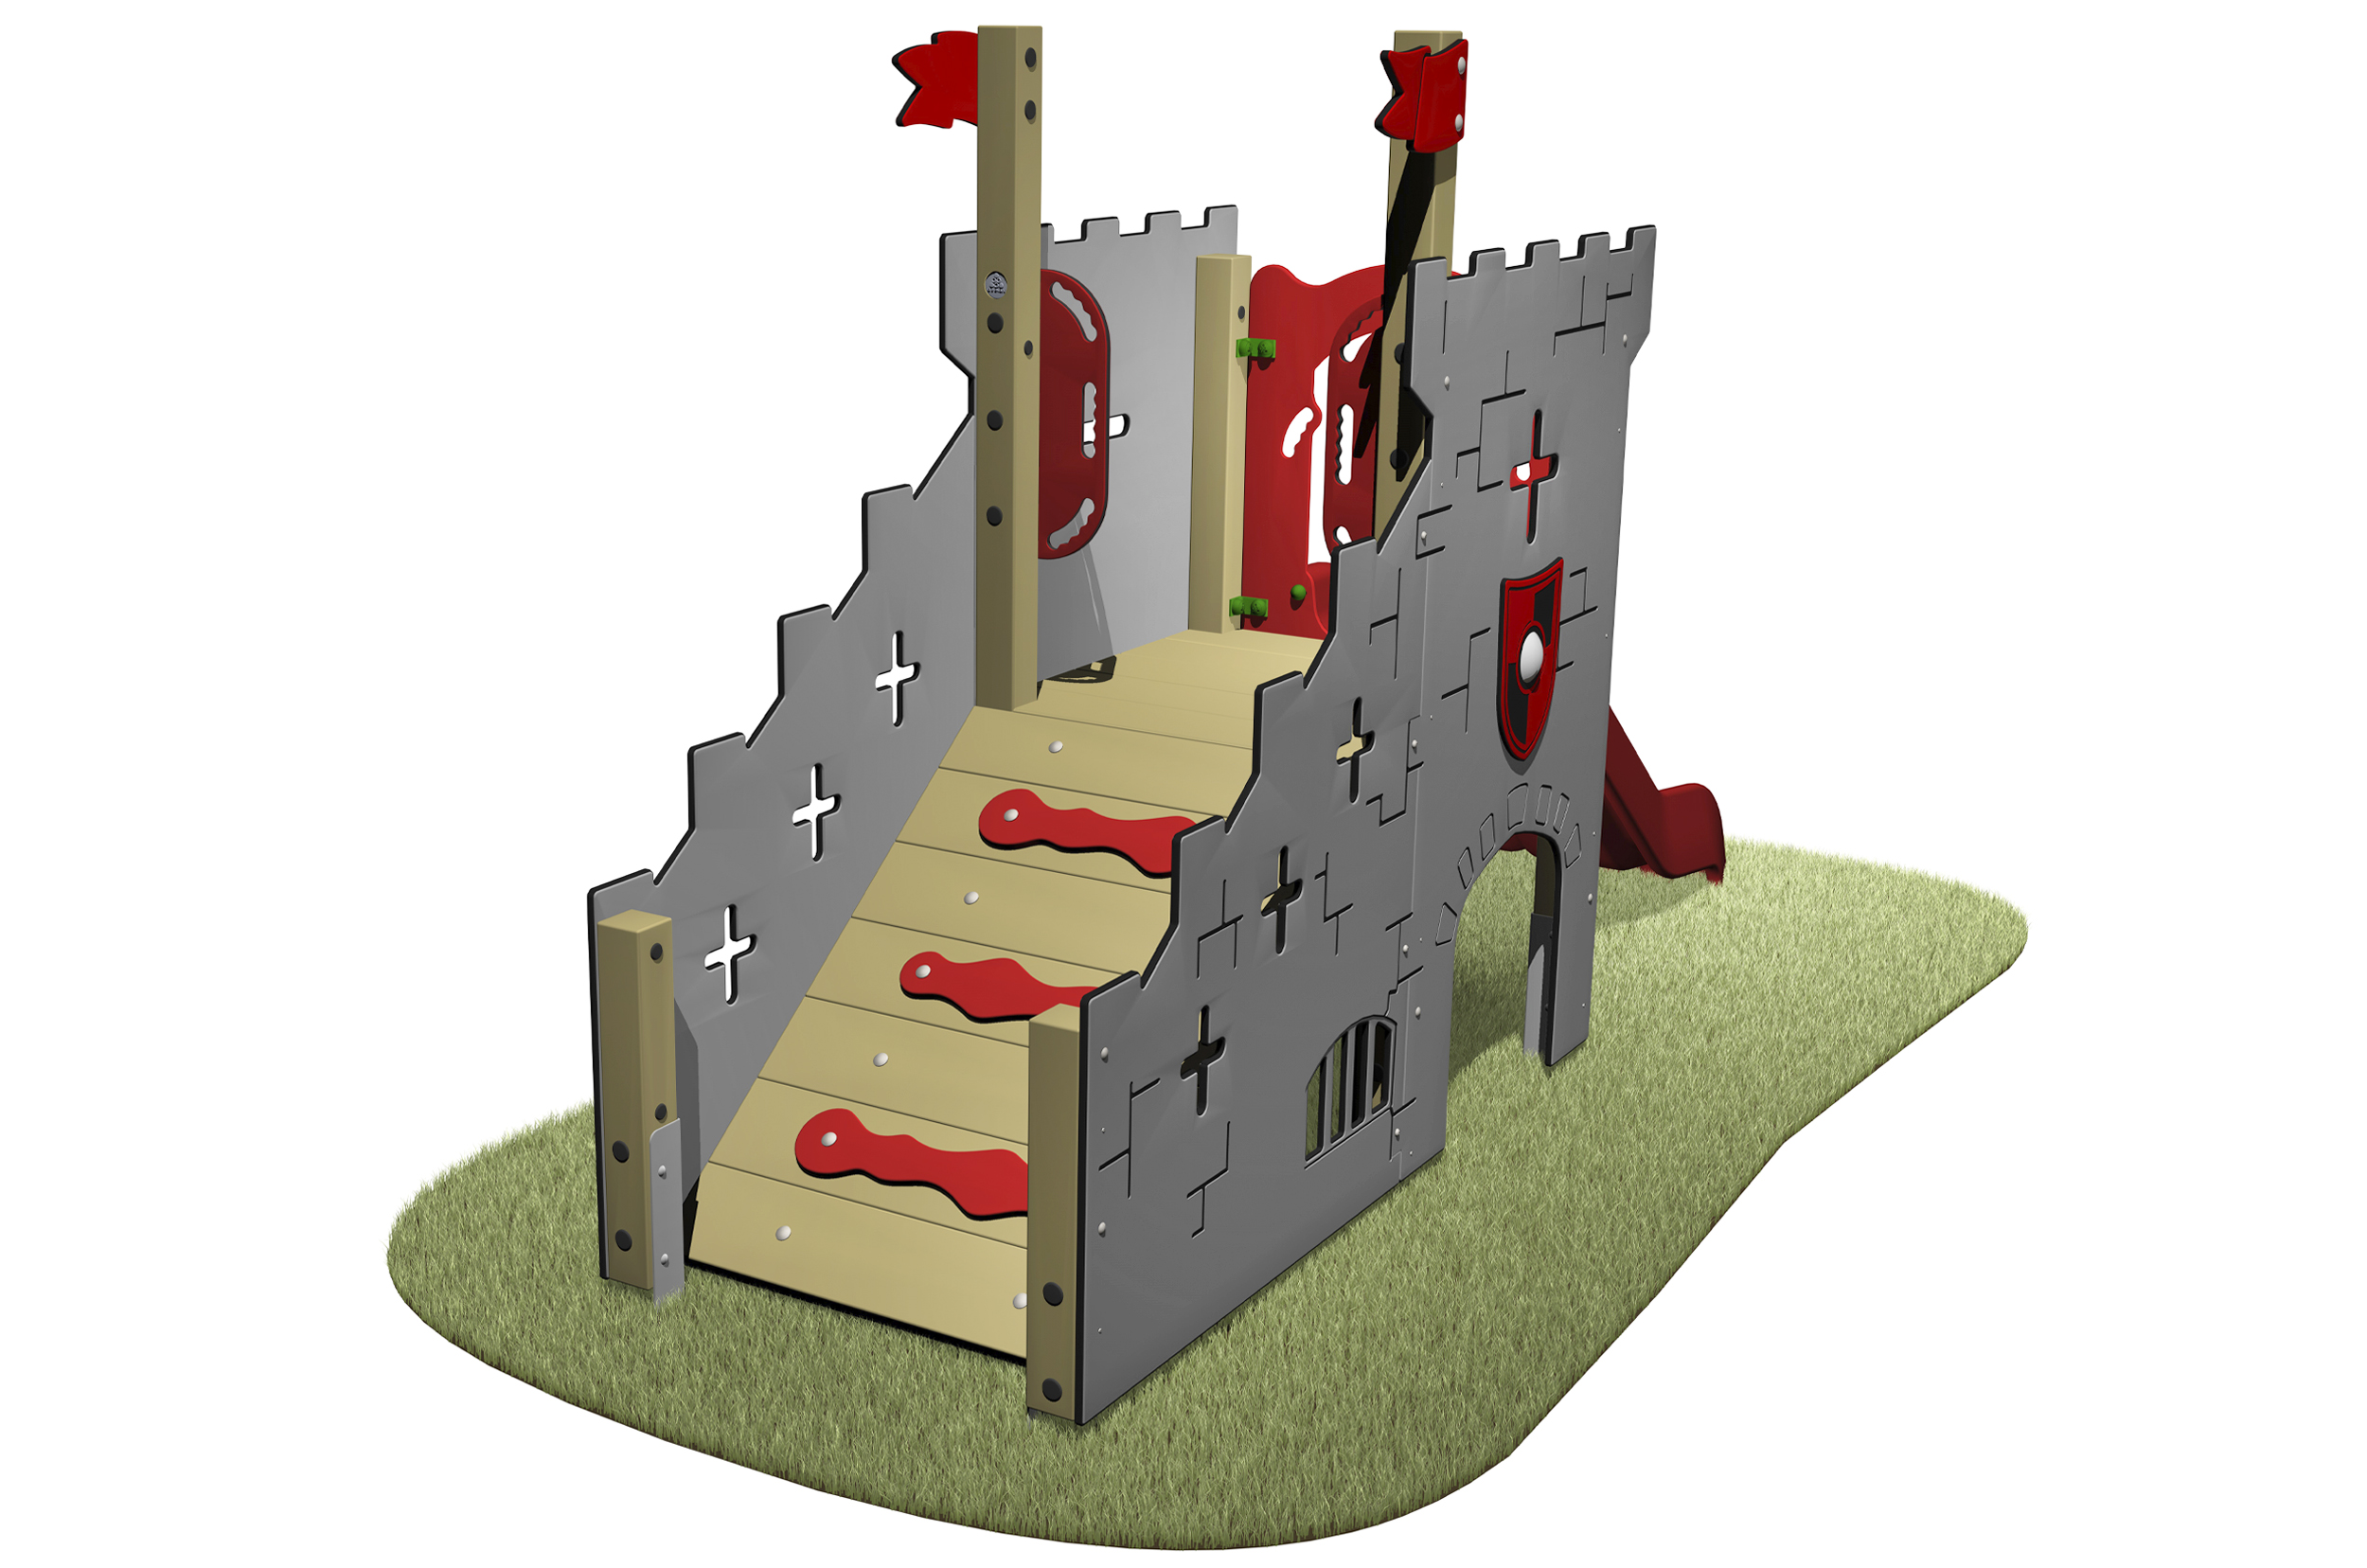 Castle Slide themed unit with a red slide and climb ramp